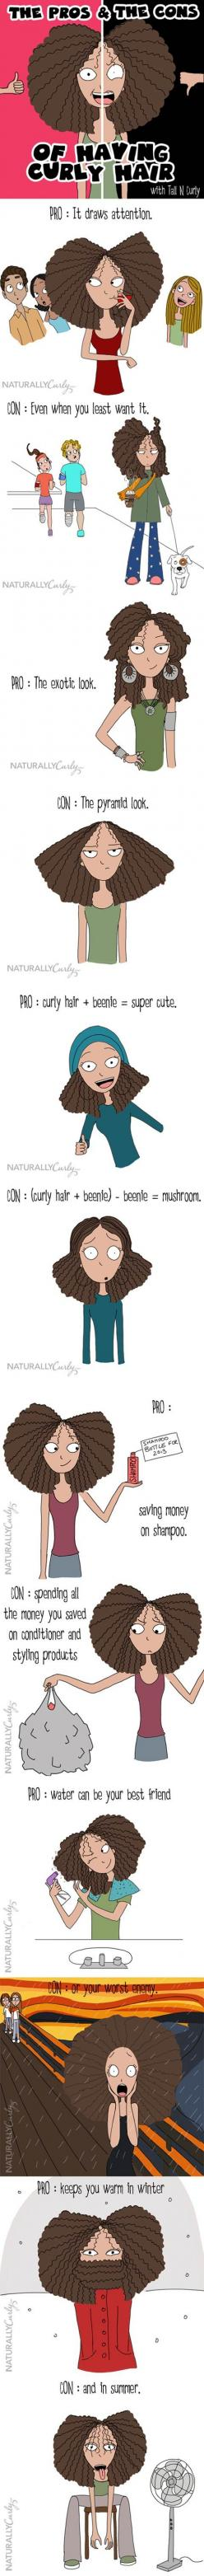 The Pros and Cons of Having Curly Hair. @Elyse Exposito Exposito Exposito Exposito Garverick XD: Naturally Curly, Hair Problems, My Life, So True, Natural Hair, Curly Girl, Curly Hair, Curlyhair